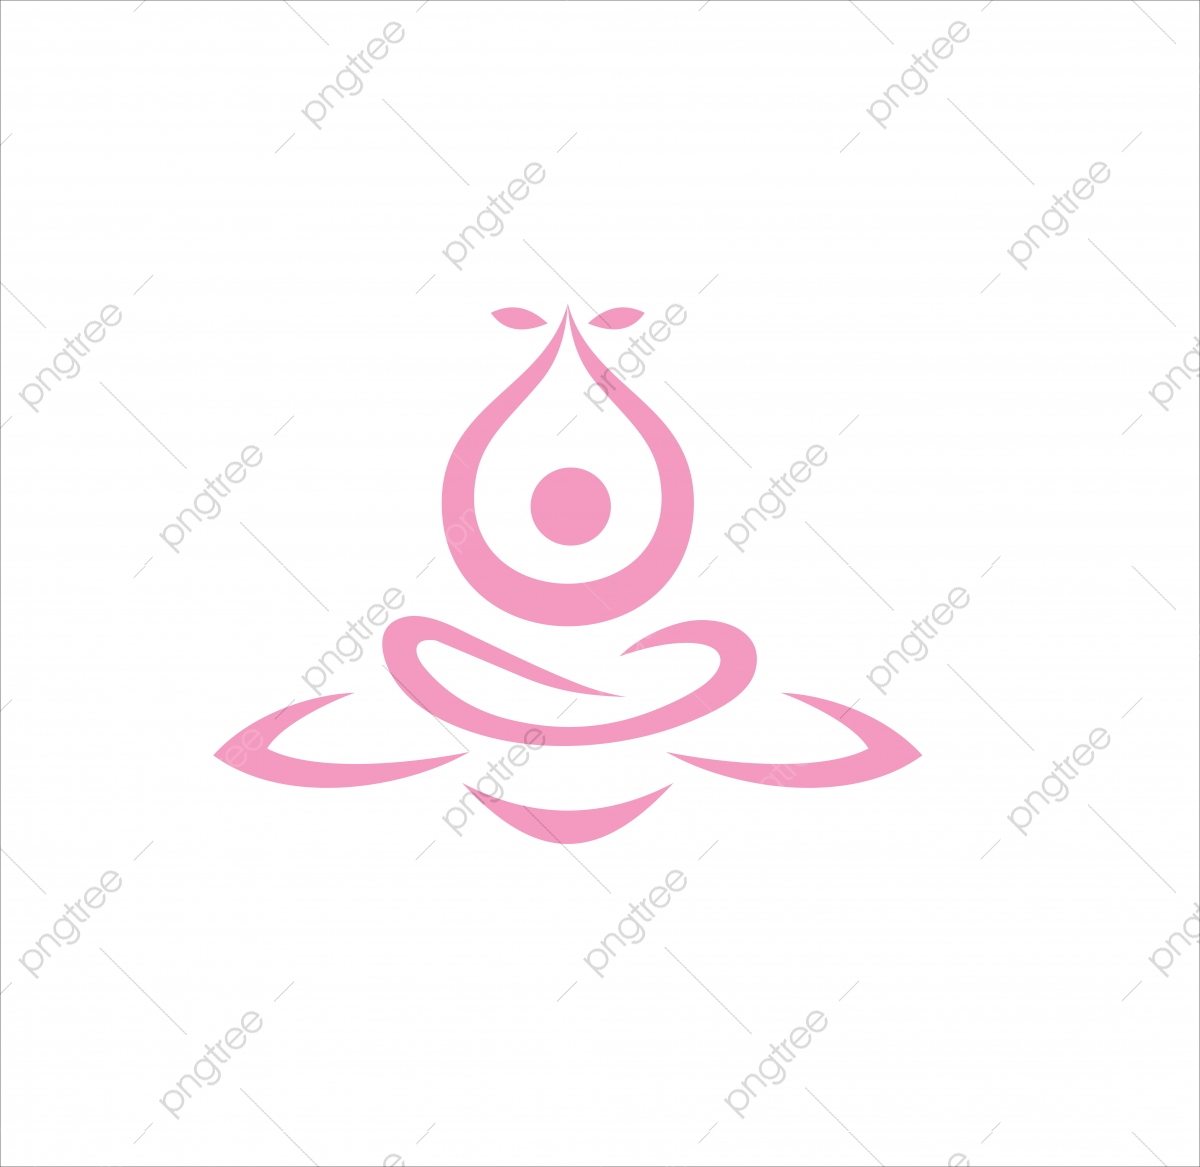 Yoga Logo Design Icon Vector Logo Icons Yoga Icons Sign Png And Vector With Transparent Background For Free Download